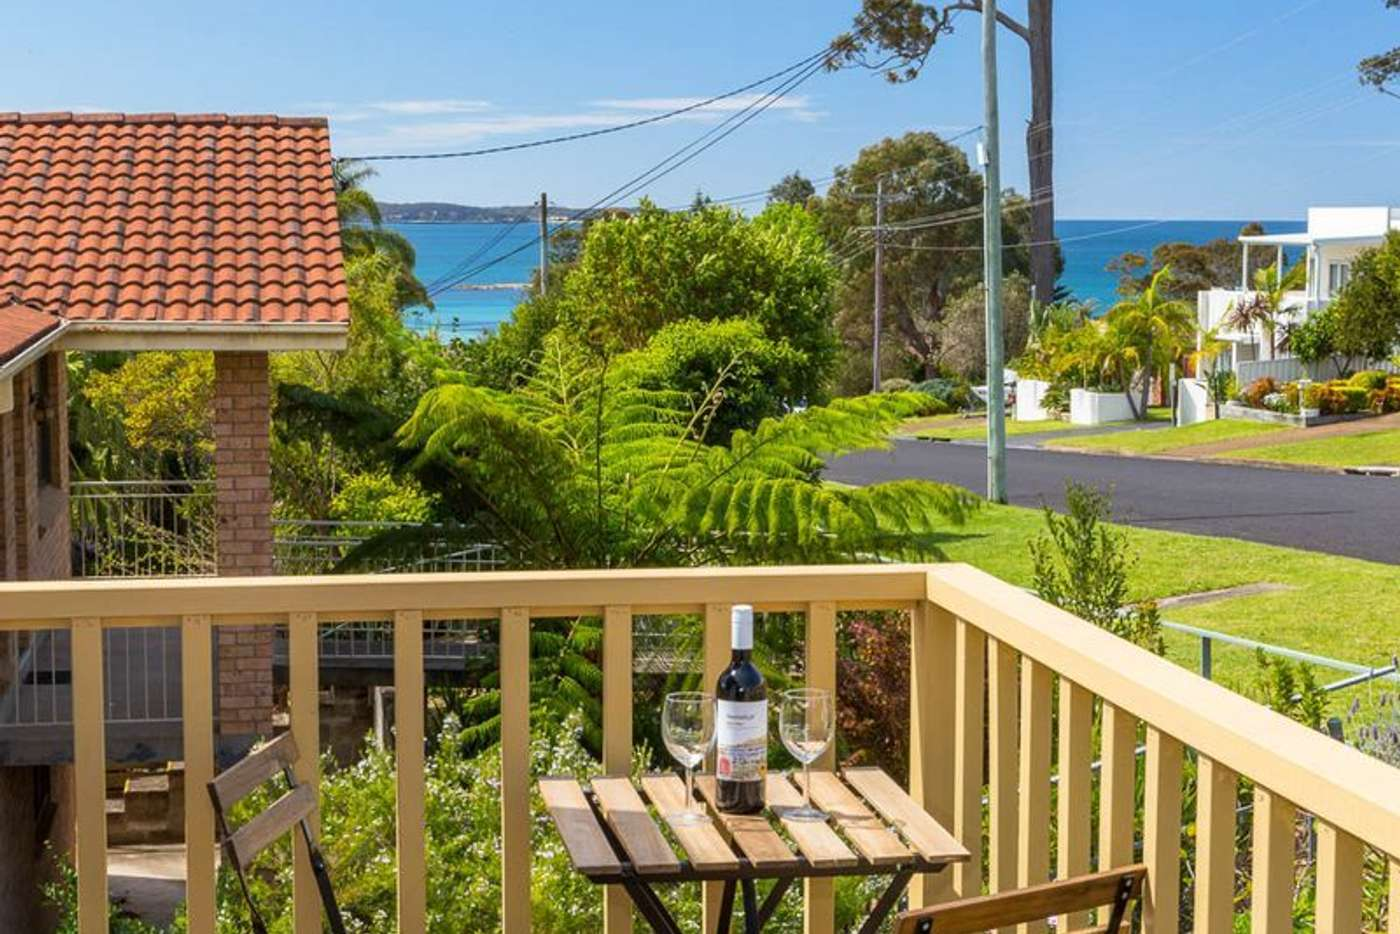 Main view of Homely house listing, 27 Ocean Avenue, Surf Beach NSW 2536